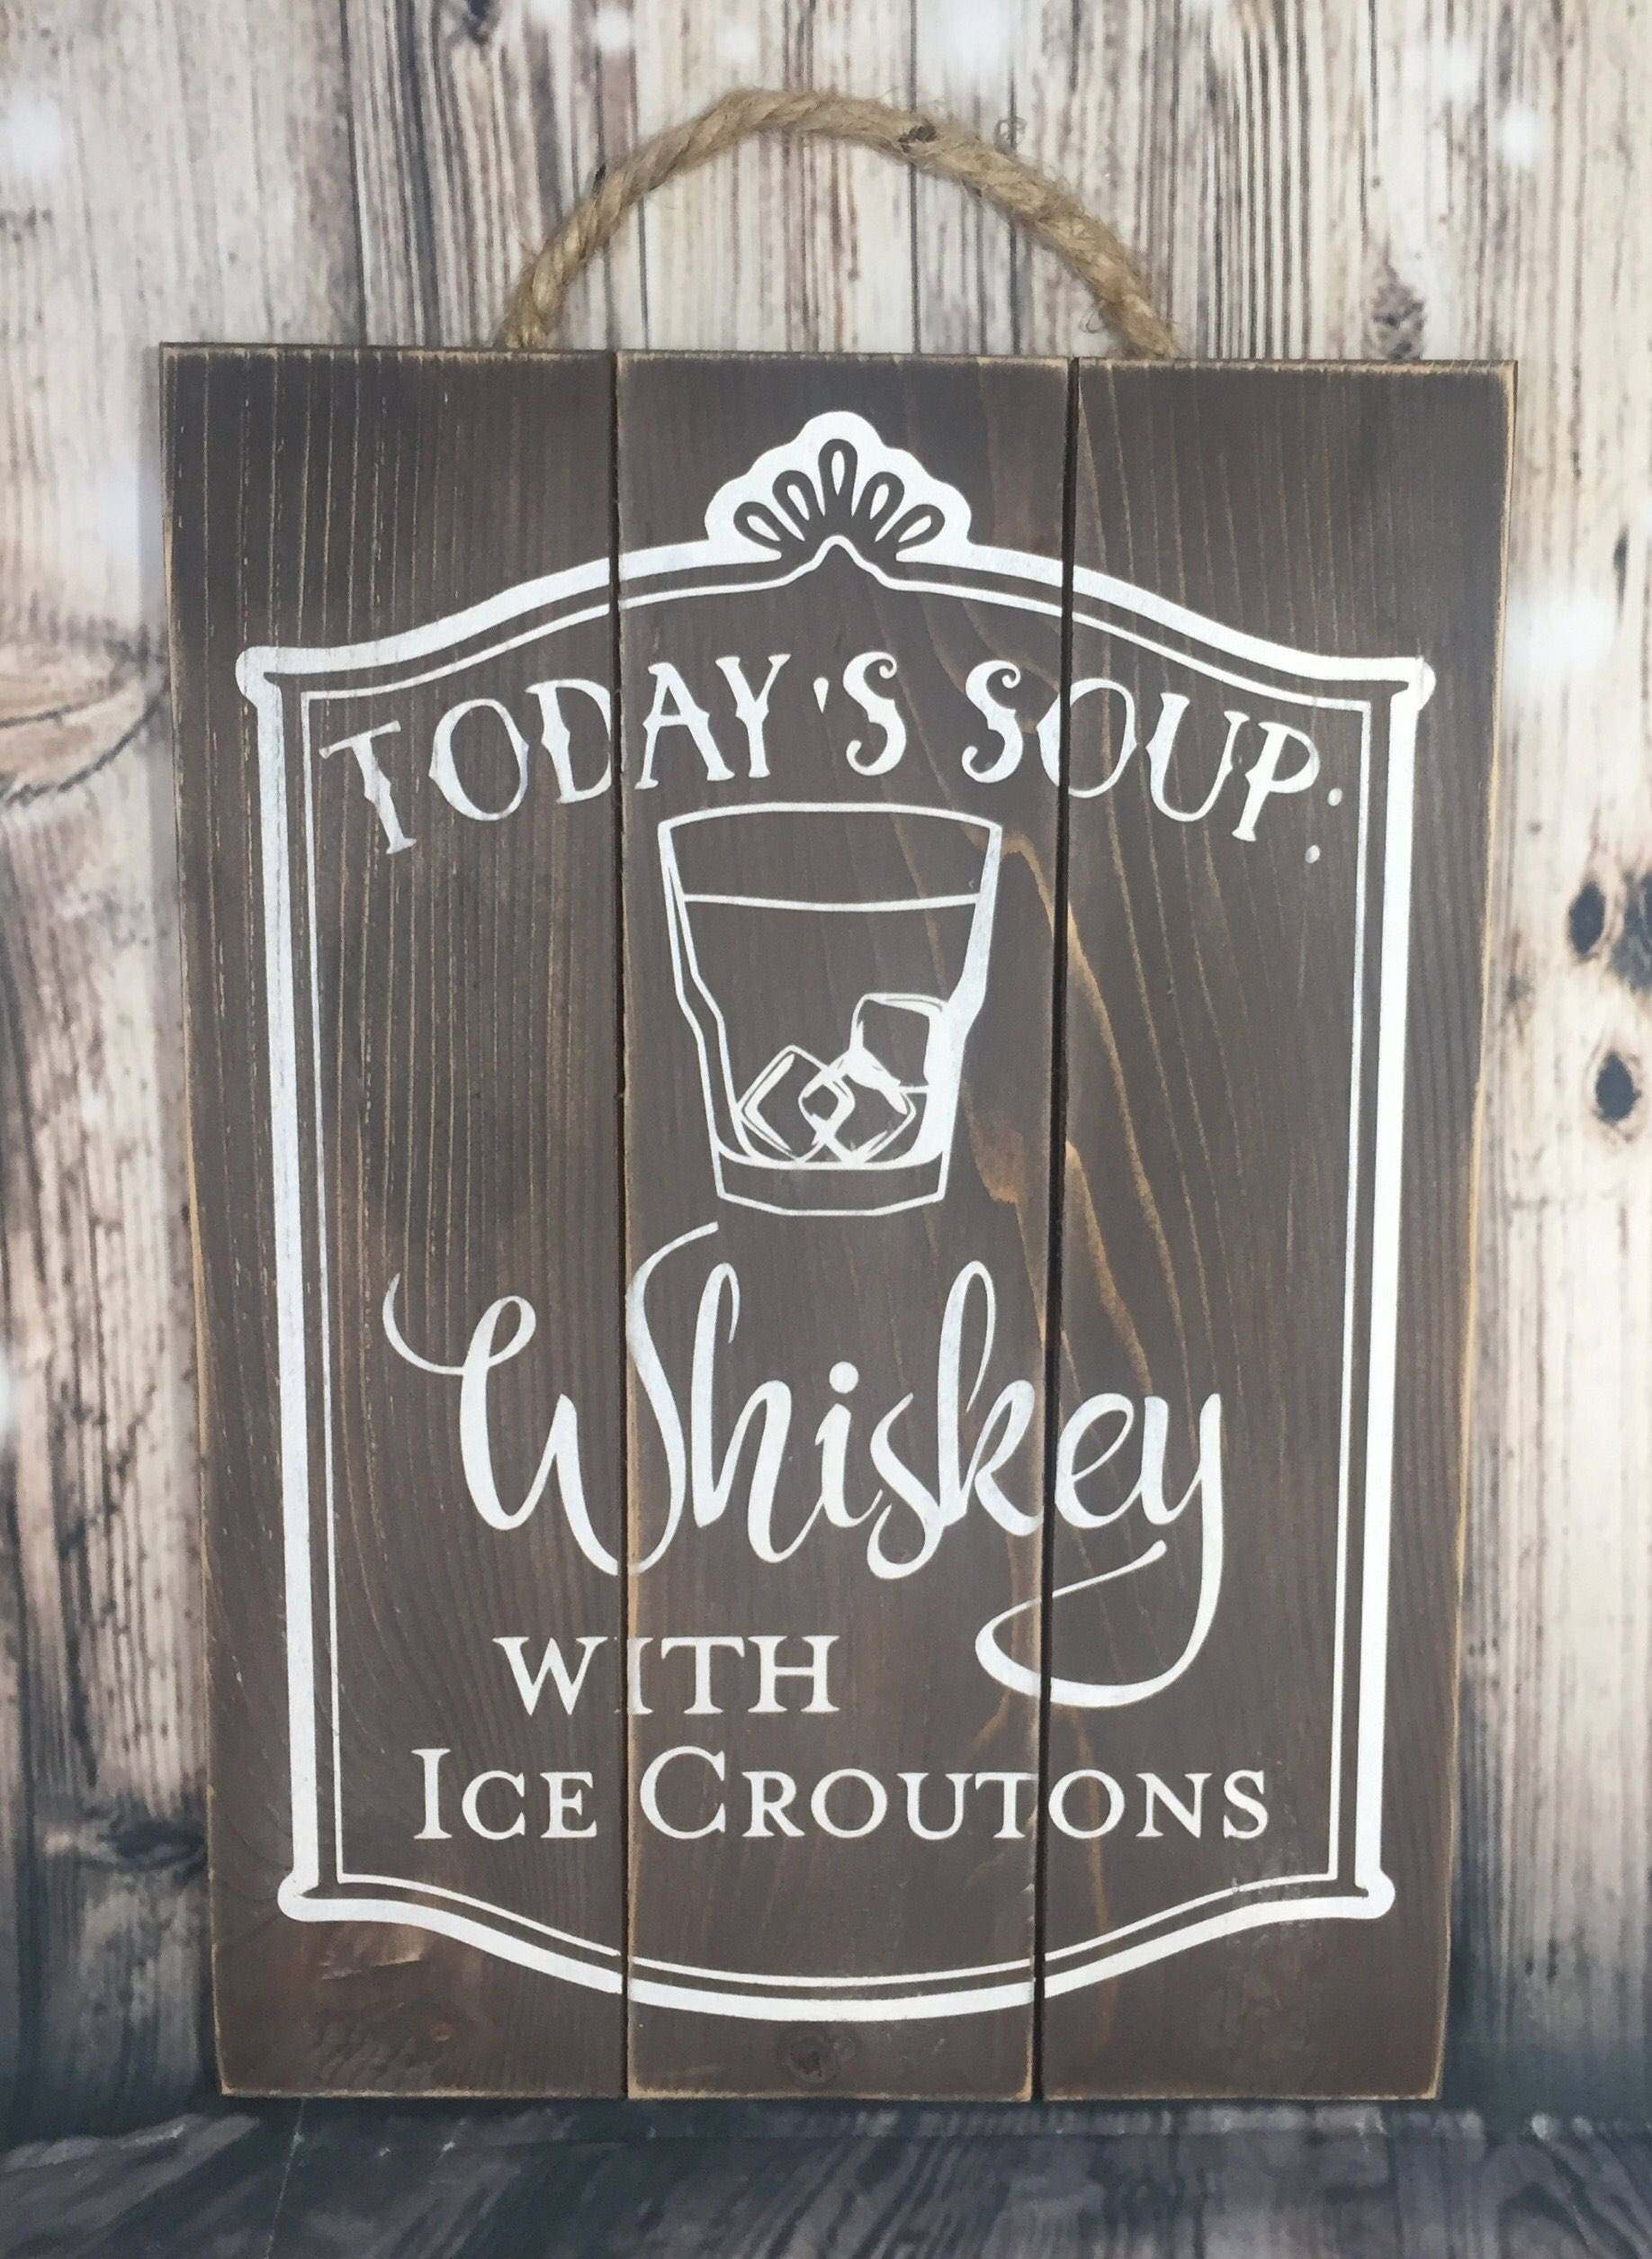 Restaurant bar kitchen decor today s soup whiskey